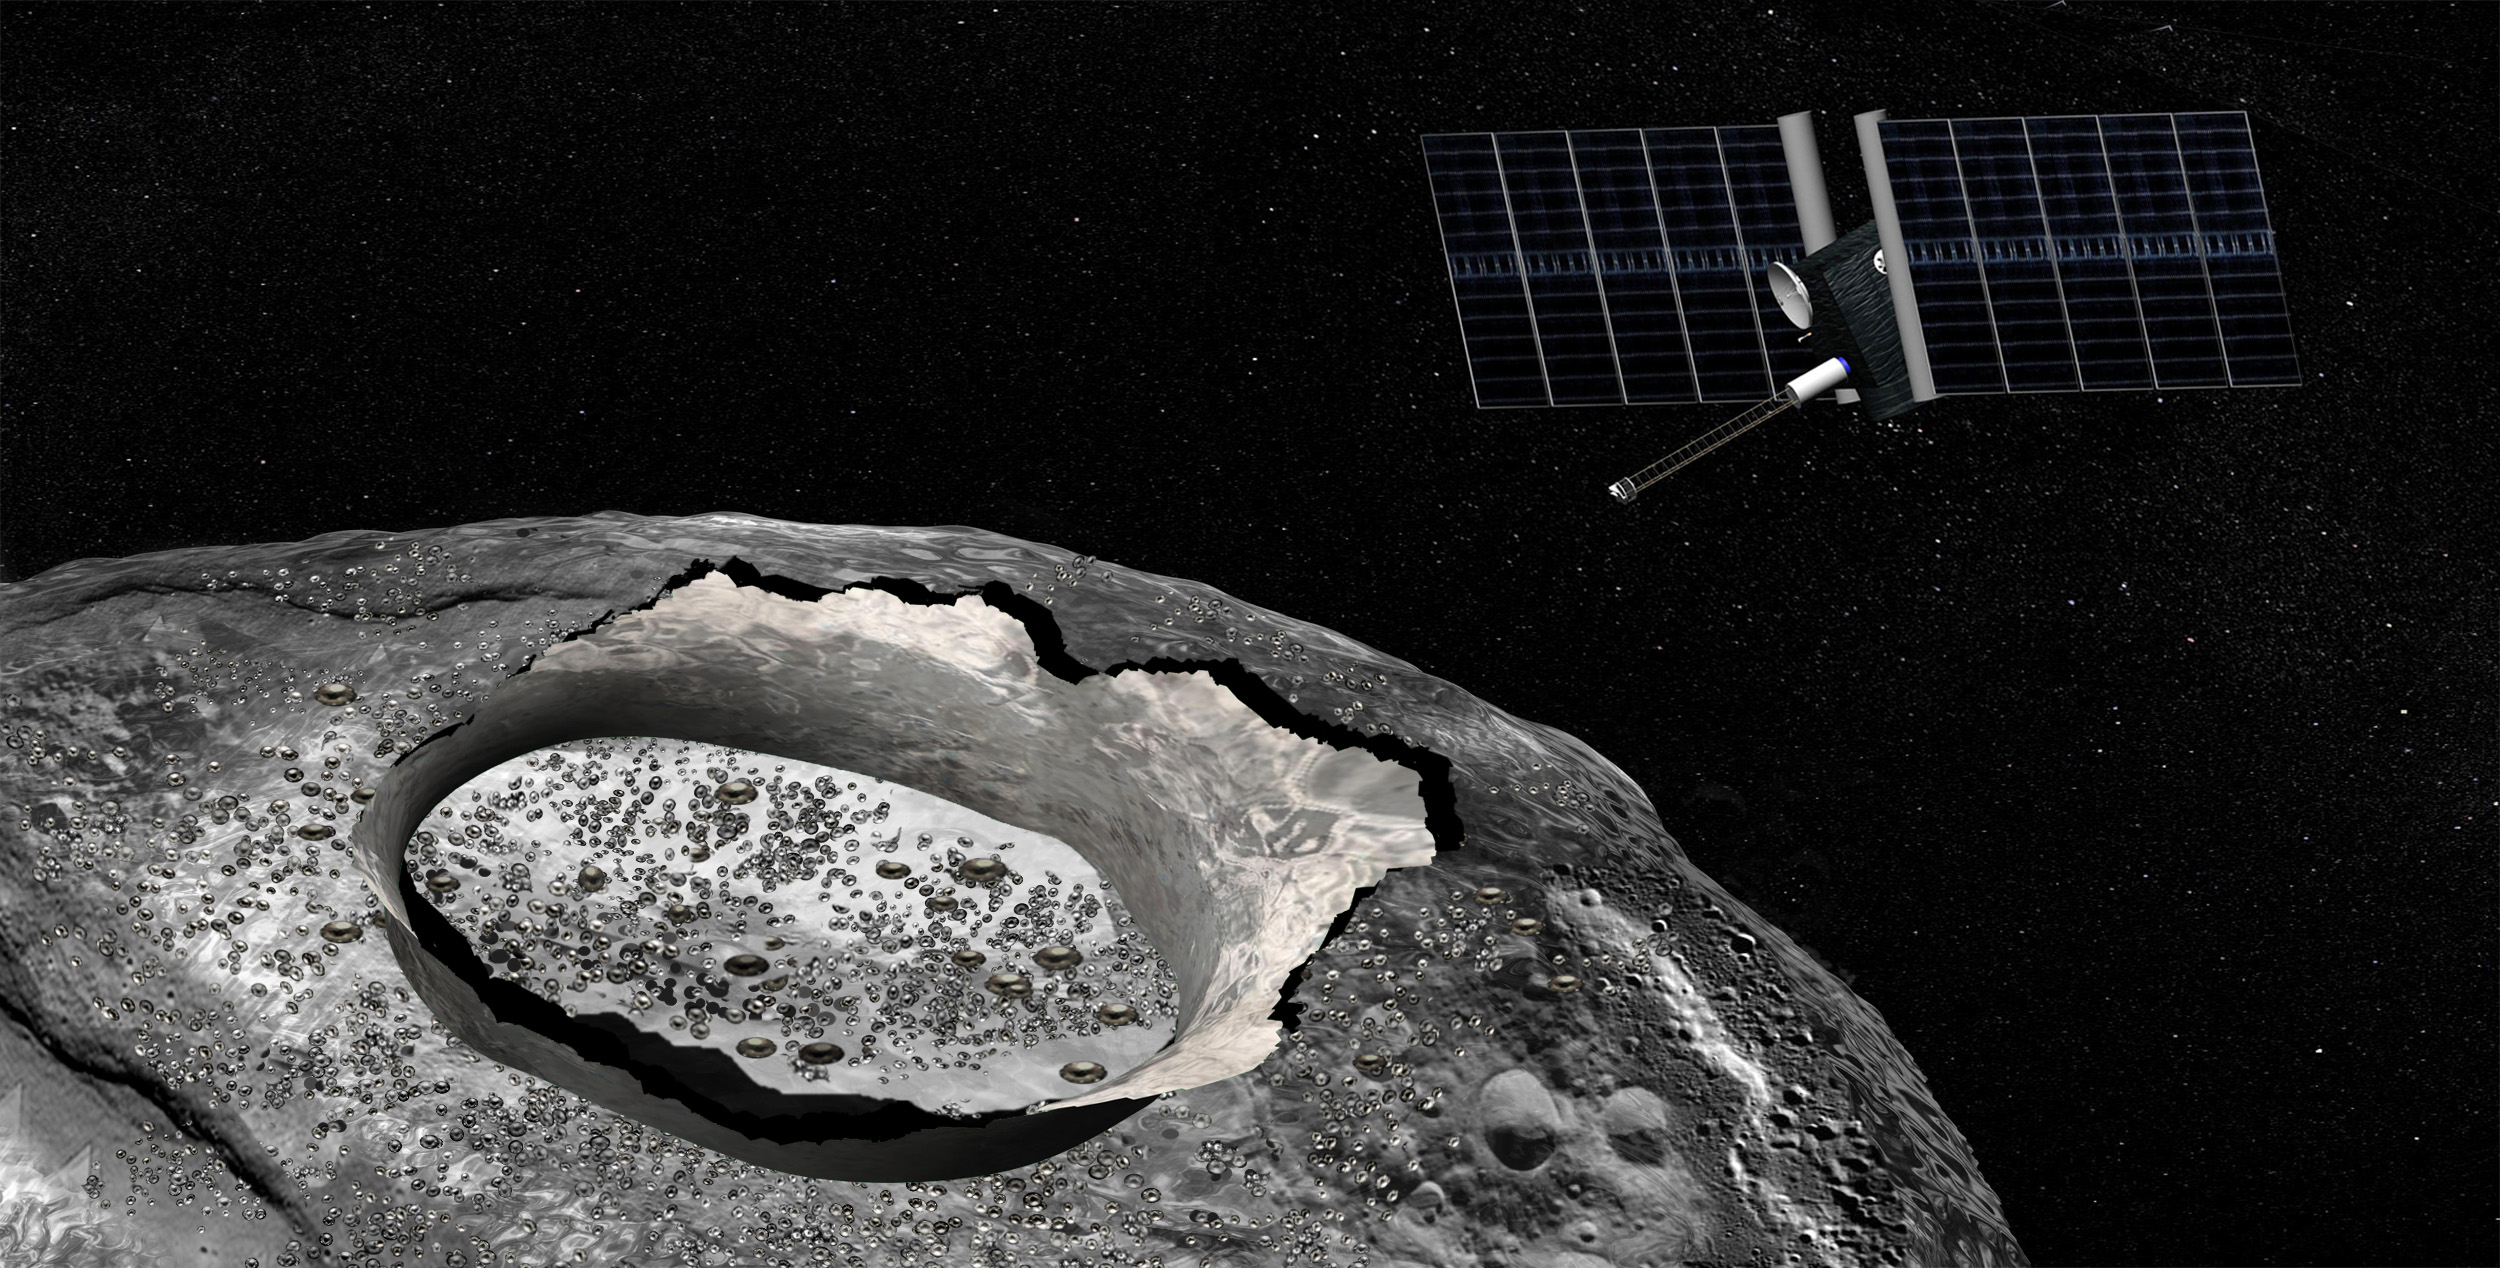 Giant Metallic Asteroid Psyche May Have Water